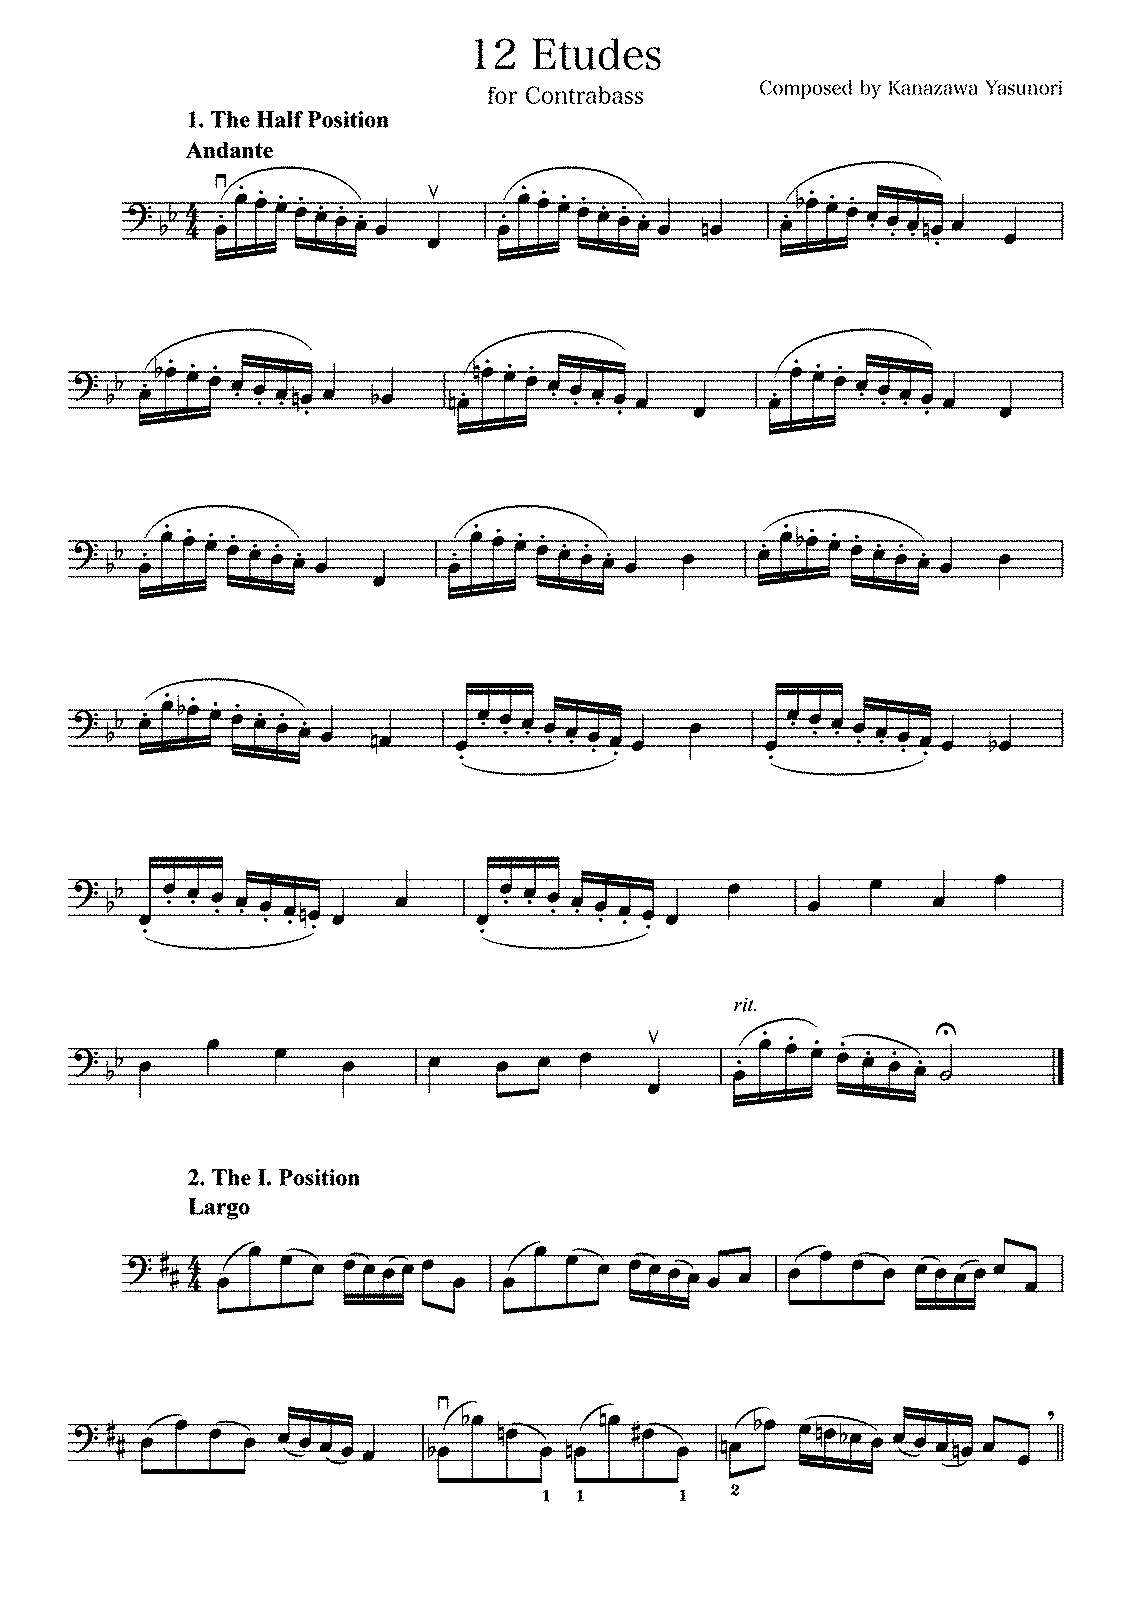 PMLP317359-12 Etude for Contrabass.pdf